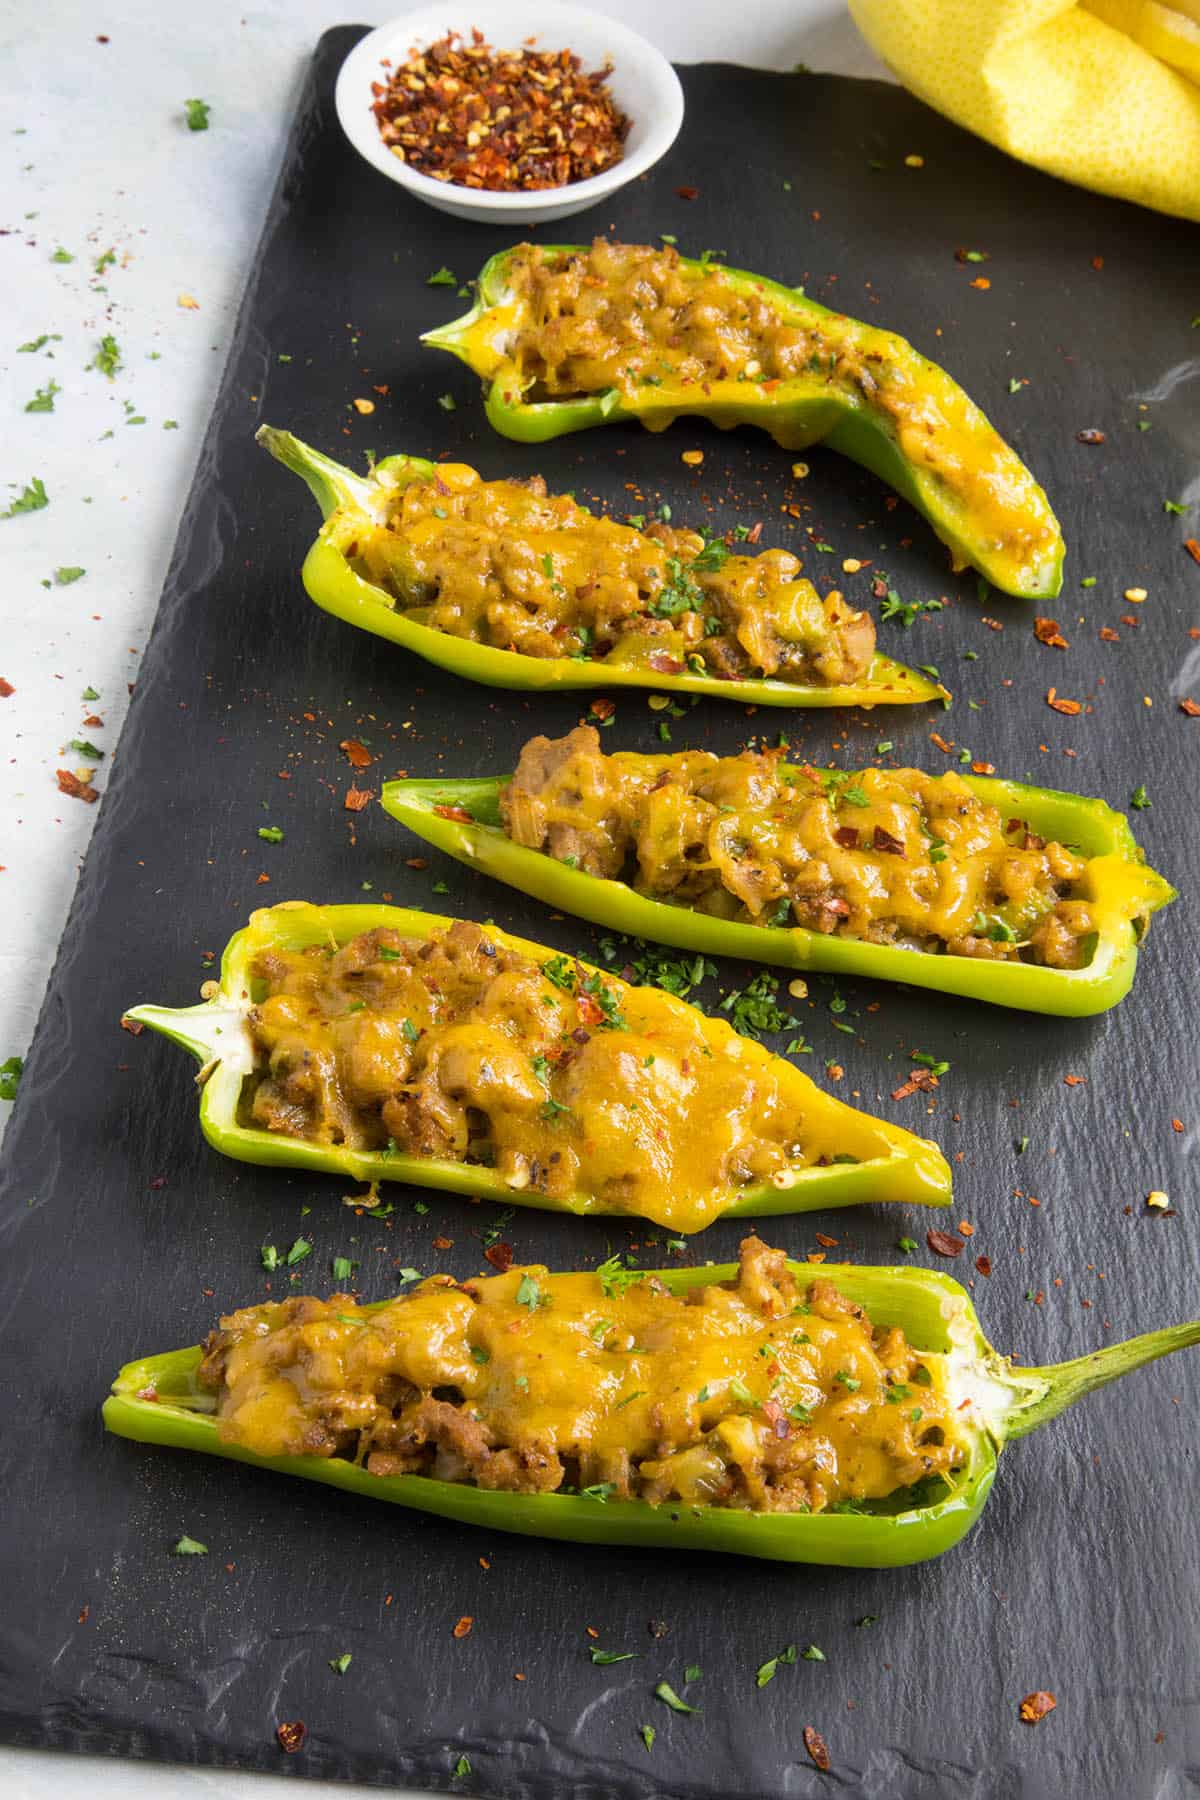 Turkey and Cheddar Stuffed Anaheim Peppers